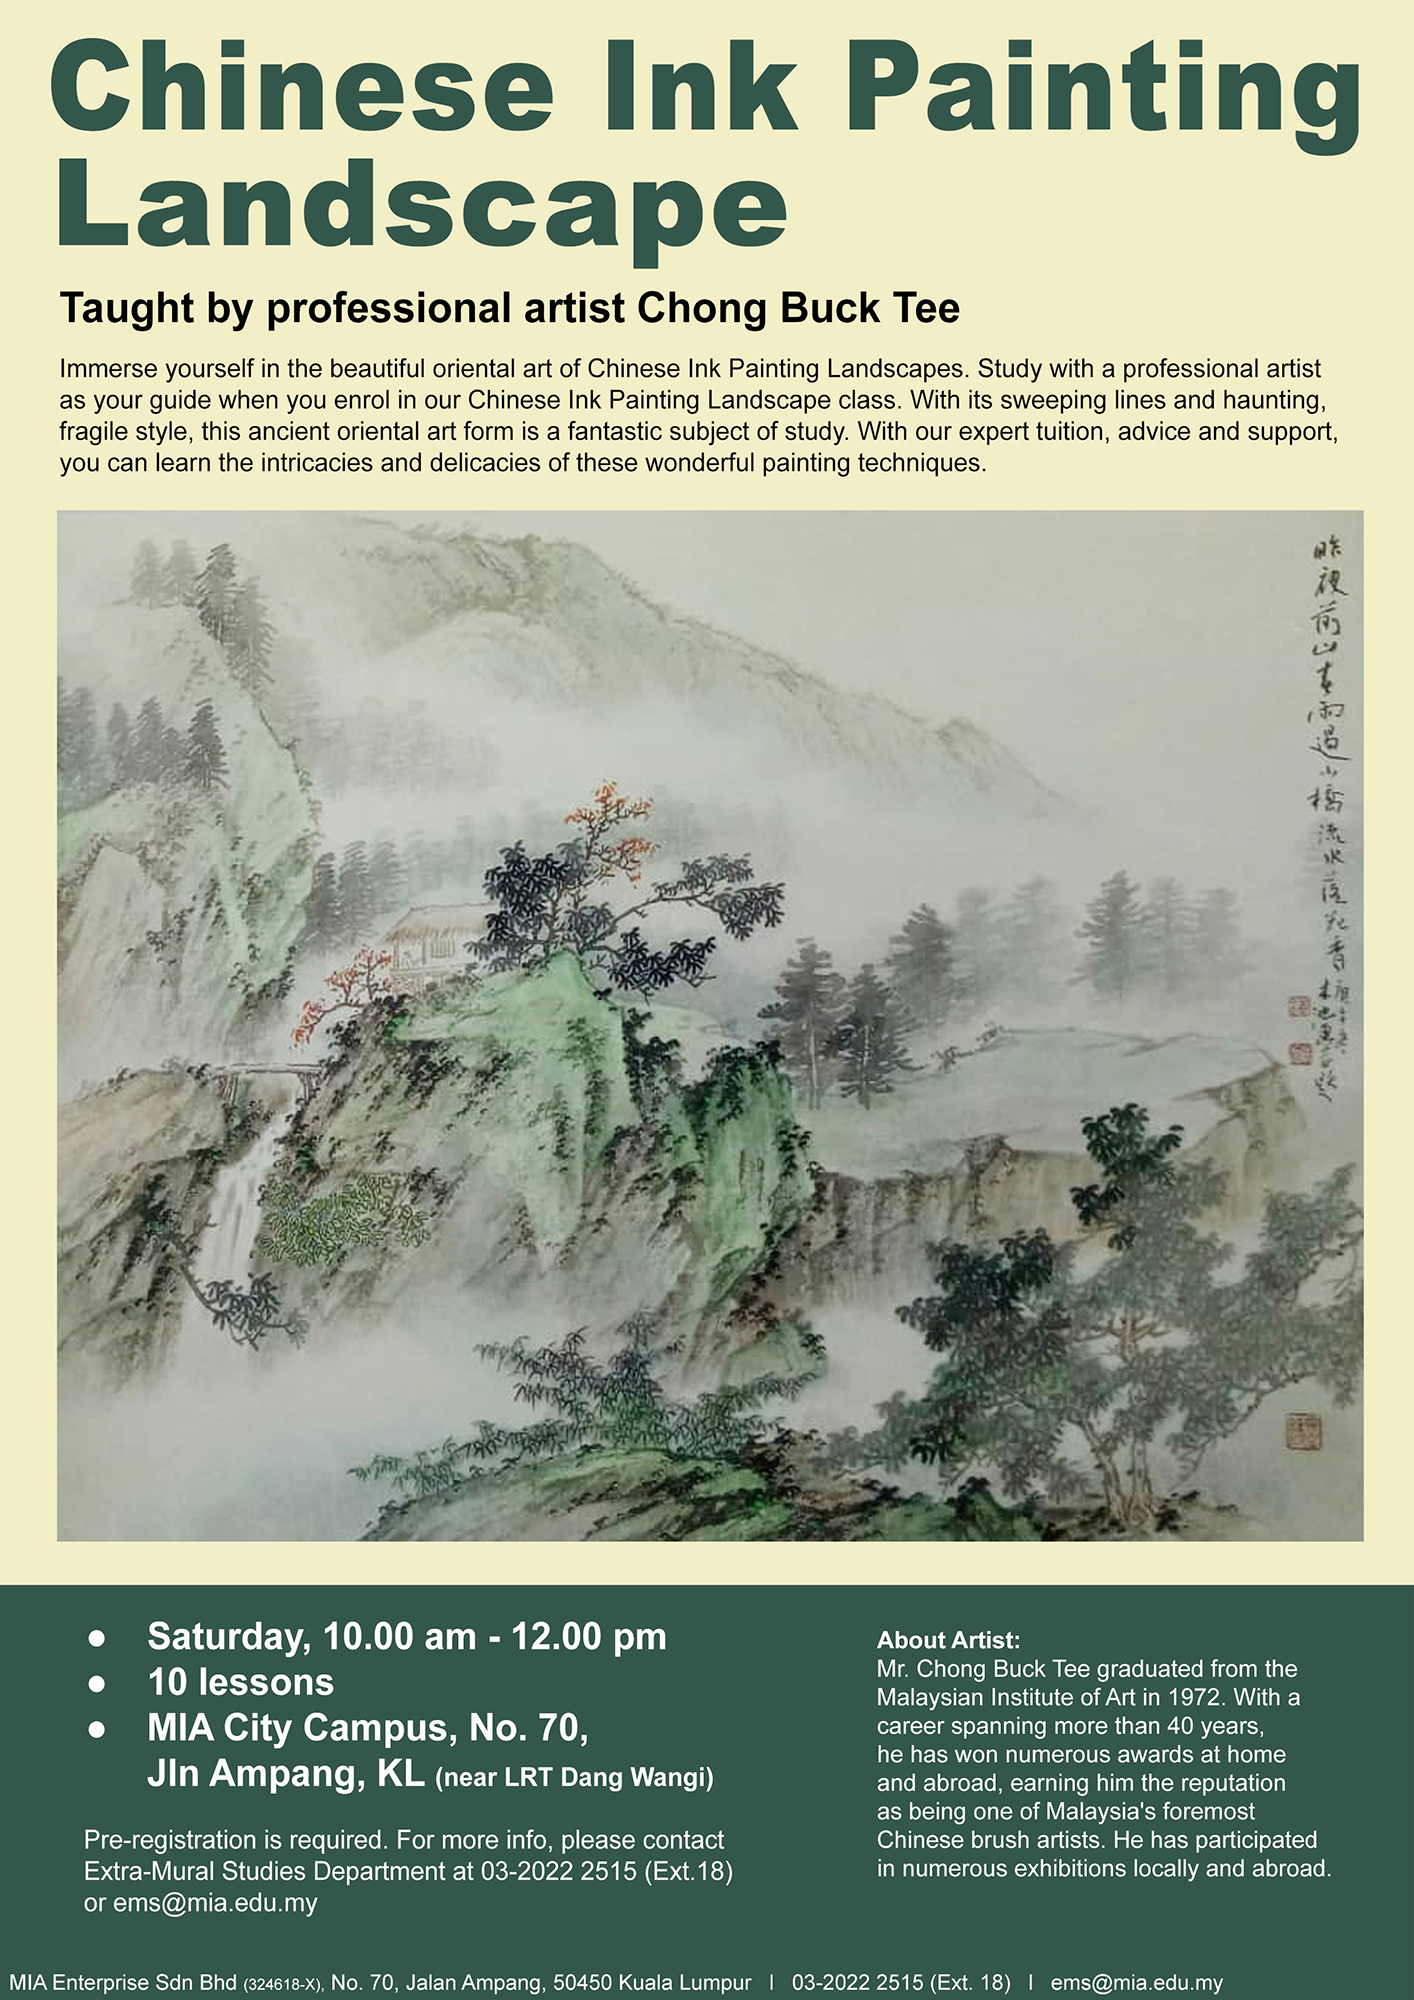 Chinese Ink Painting Landscape Class